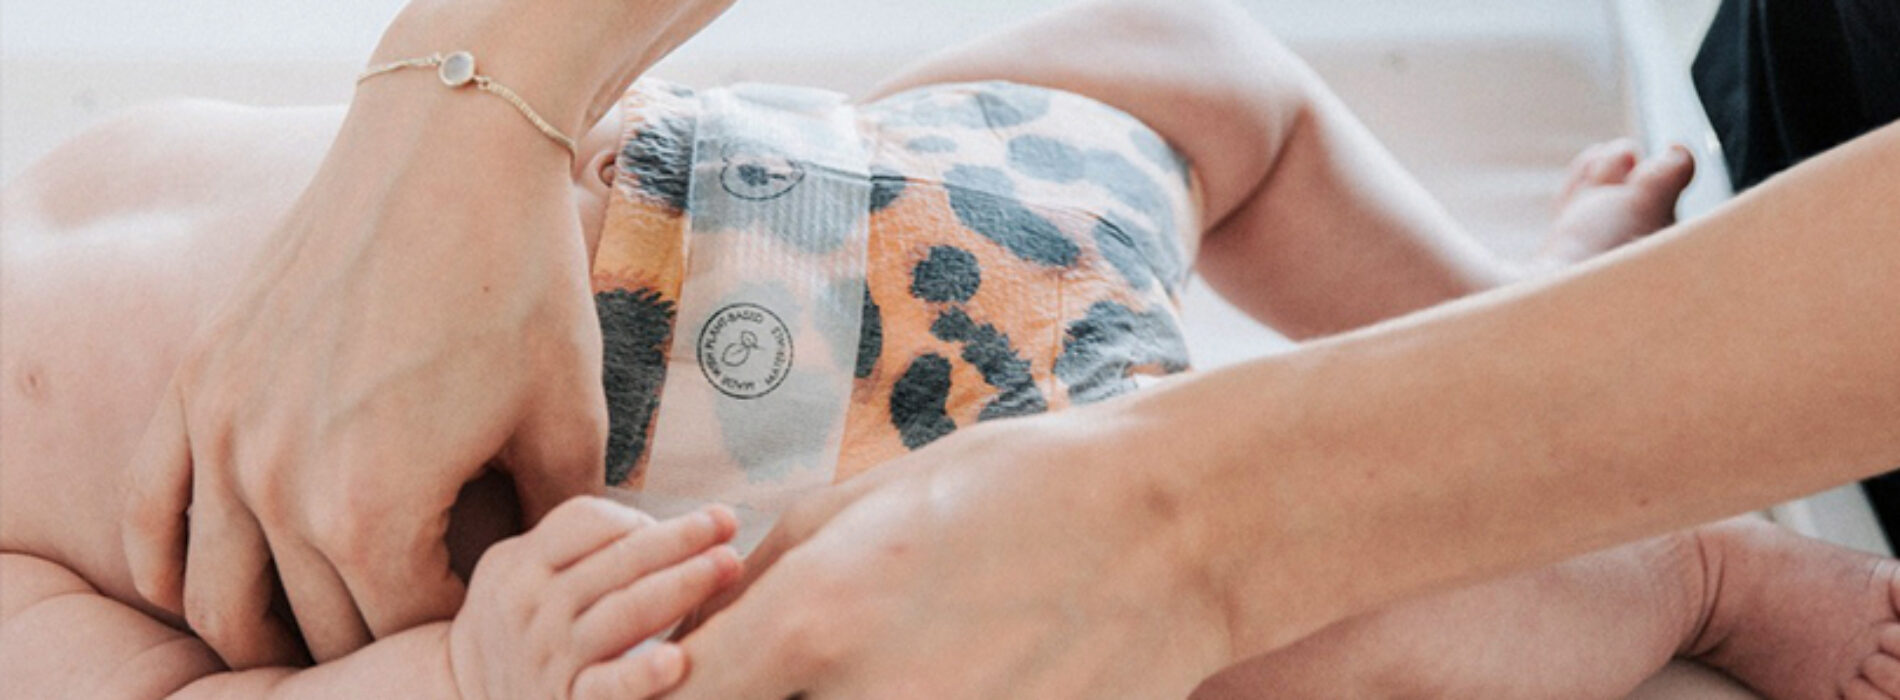 How to win a month's supply of nappies and wipes from PureBorn